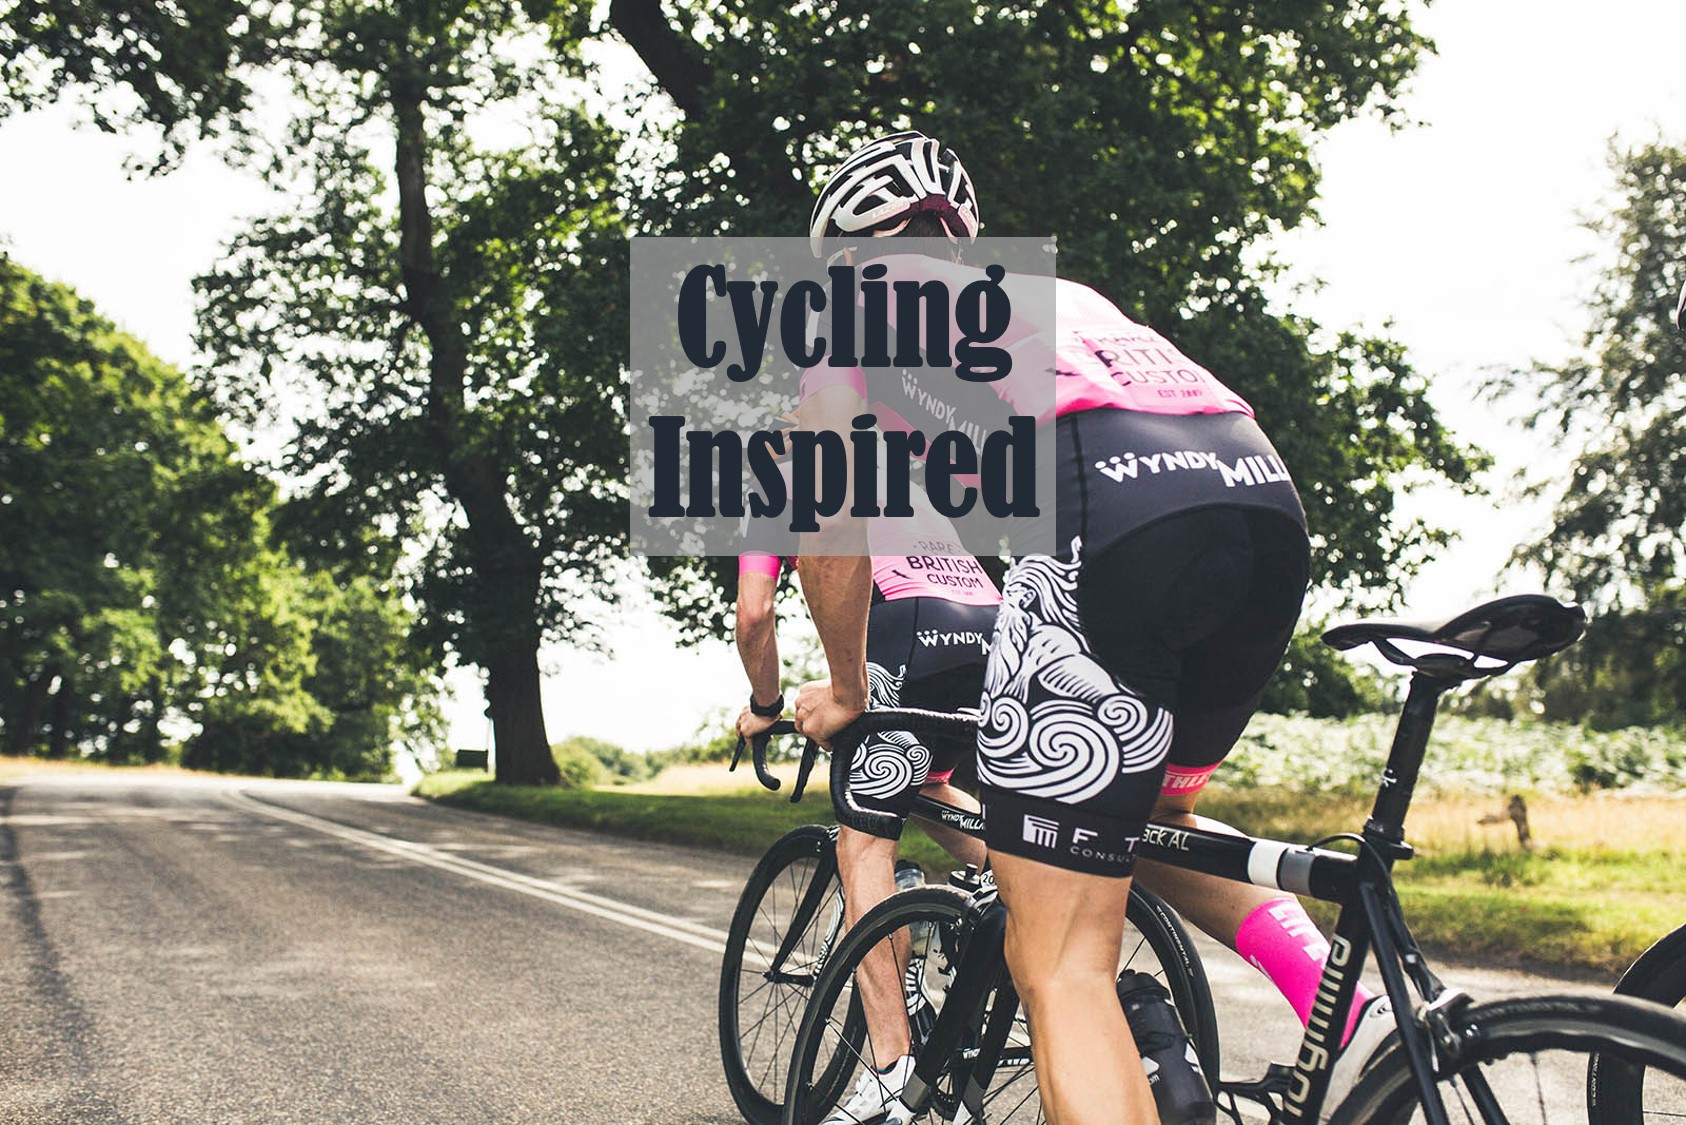 WE TAKE TO THE ICONIC SURREY HILLS NEAR LONDON WITH CYCLING ELITES (MIXED ABILITY IS POSSIBLE DON'T WORRY) TO DRAW INSPIRATION FROM THE WORLD OF MARGINAL GAINS.